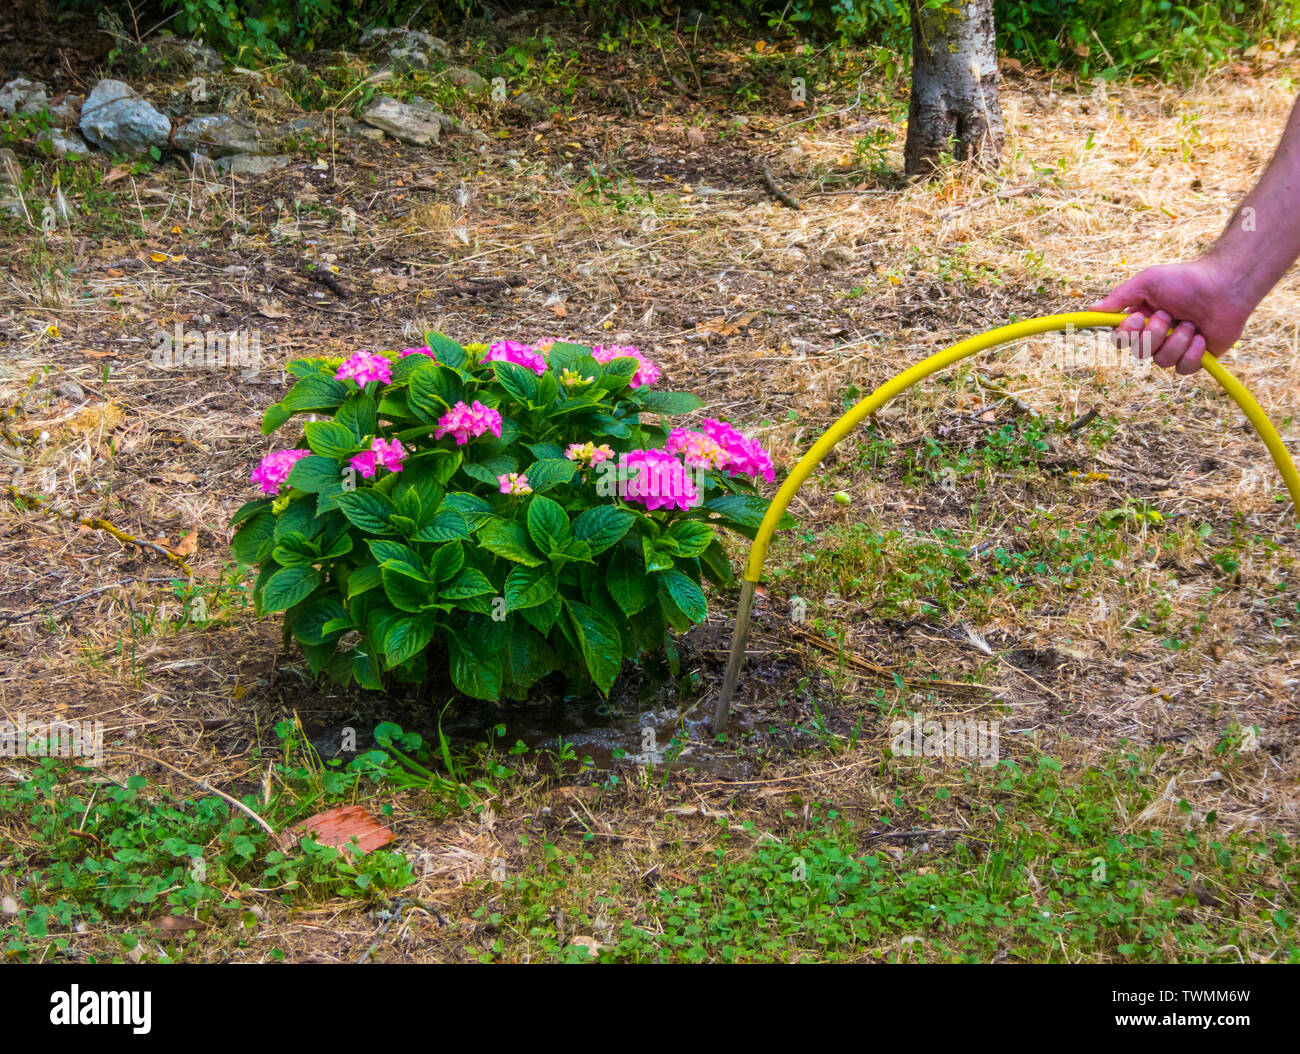 Hand watering an hydrangea plant in a garden with yellow pipe - Stock Image